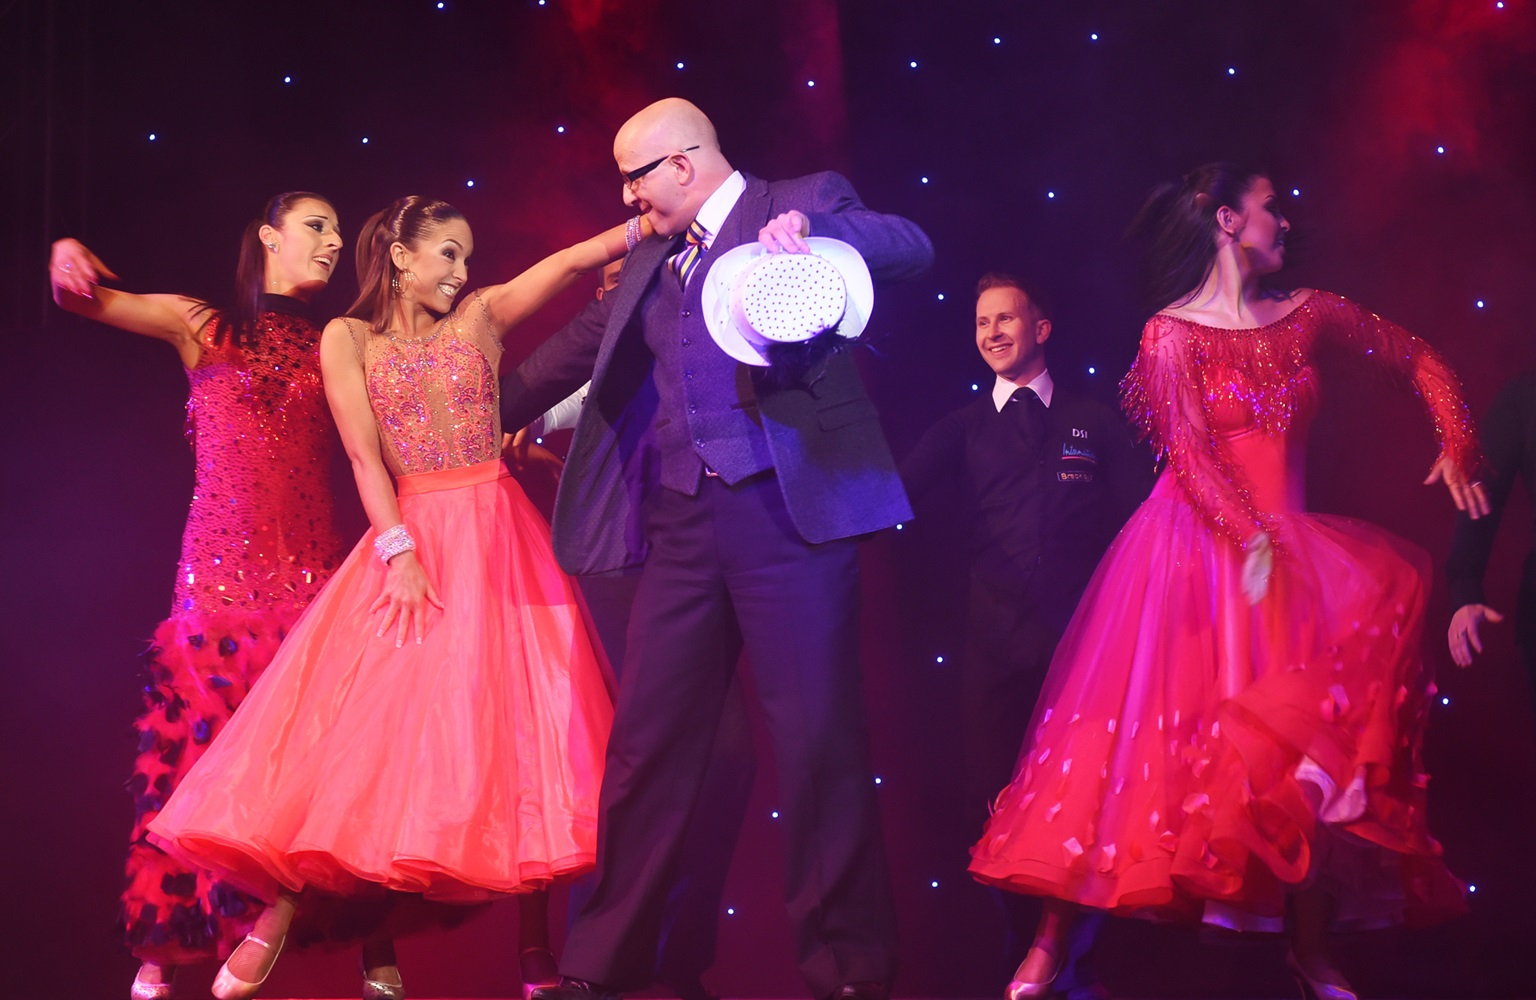 Richard Miller talks Backlash Ballroom, teaching people to dance and Strictly outfits